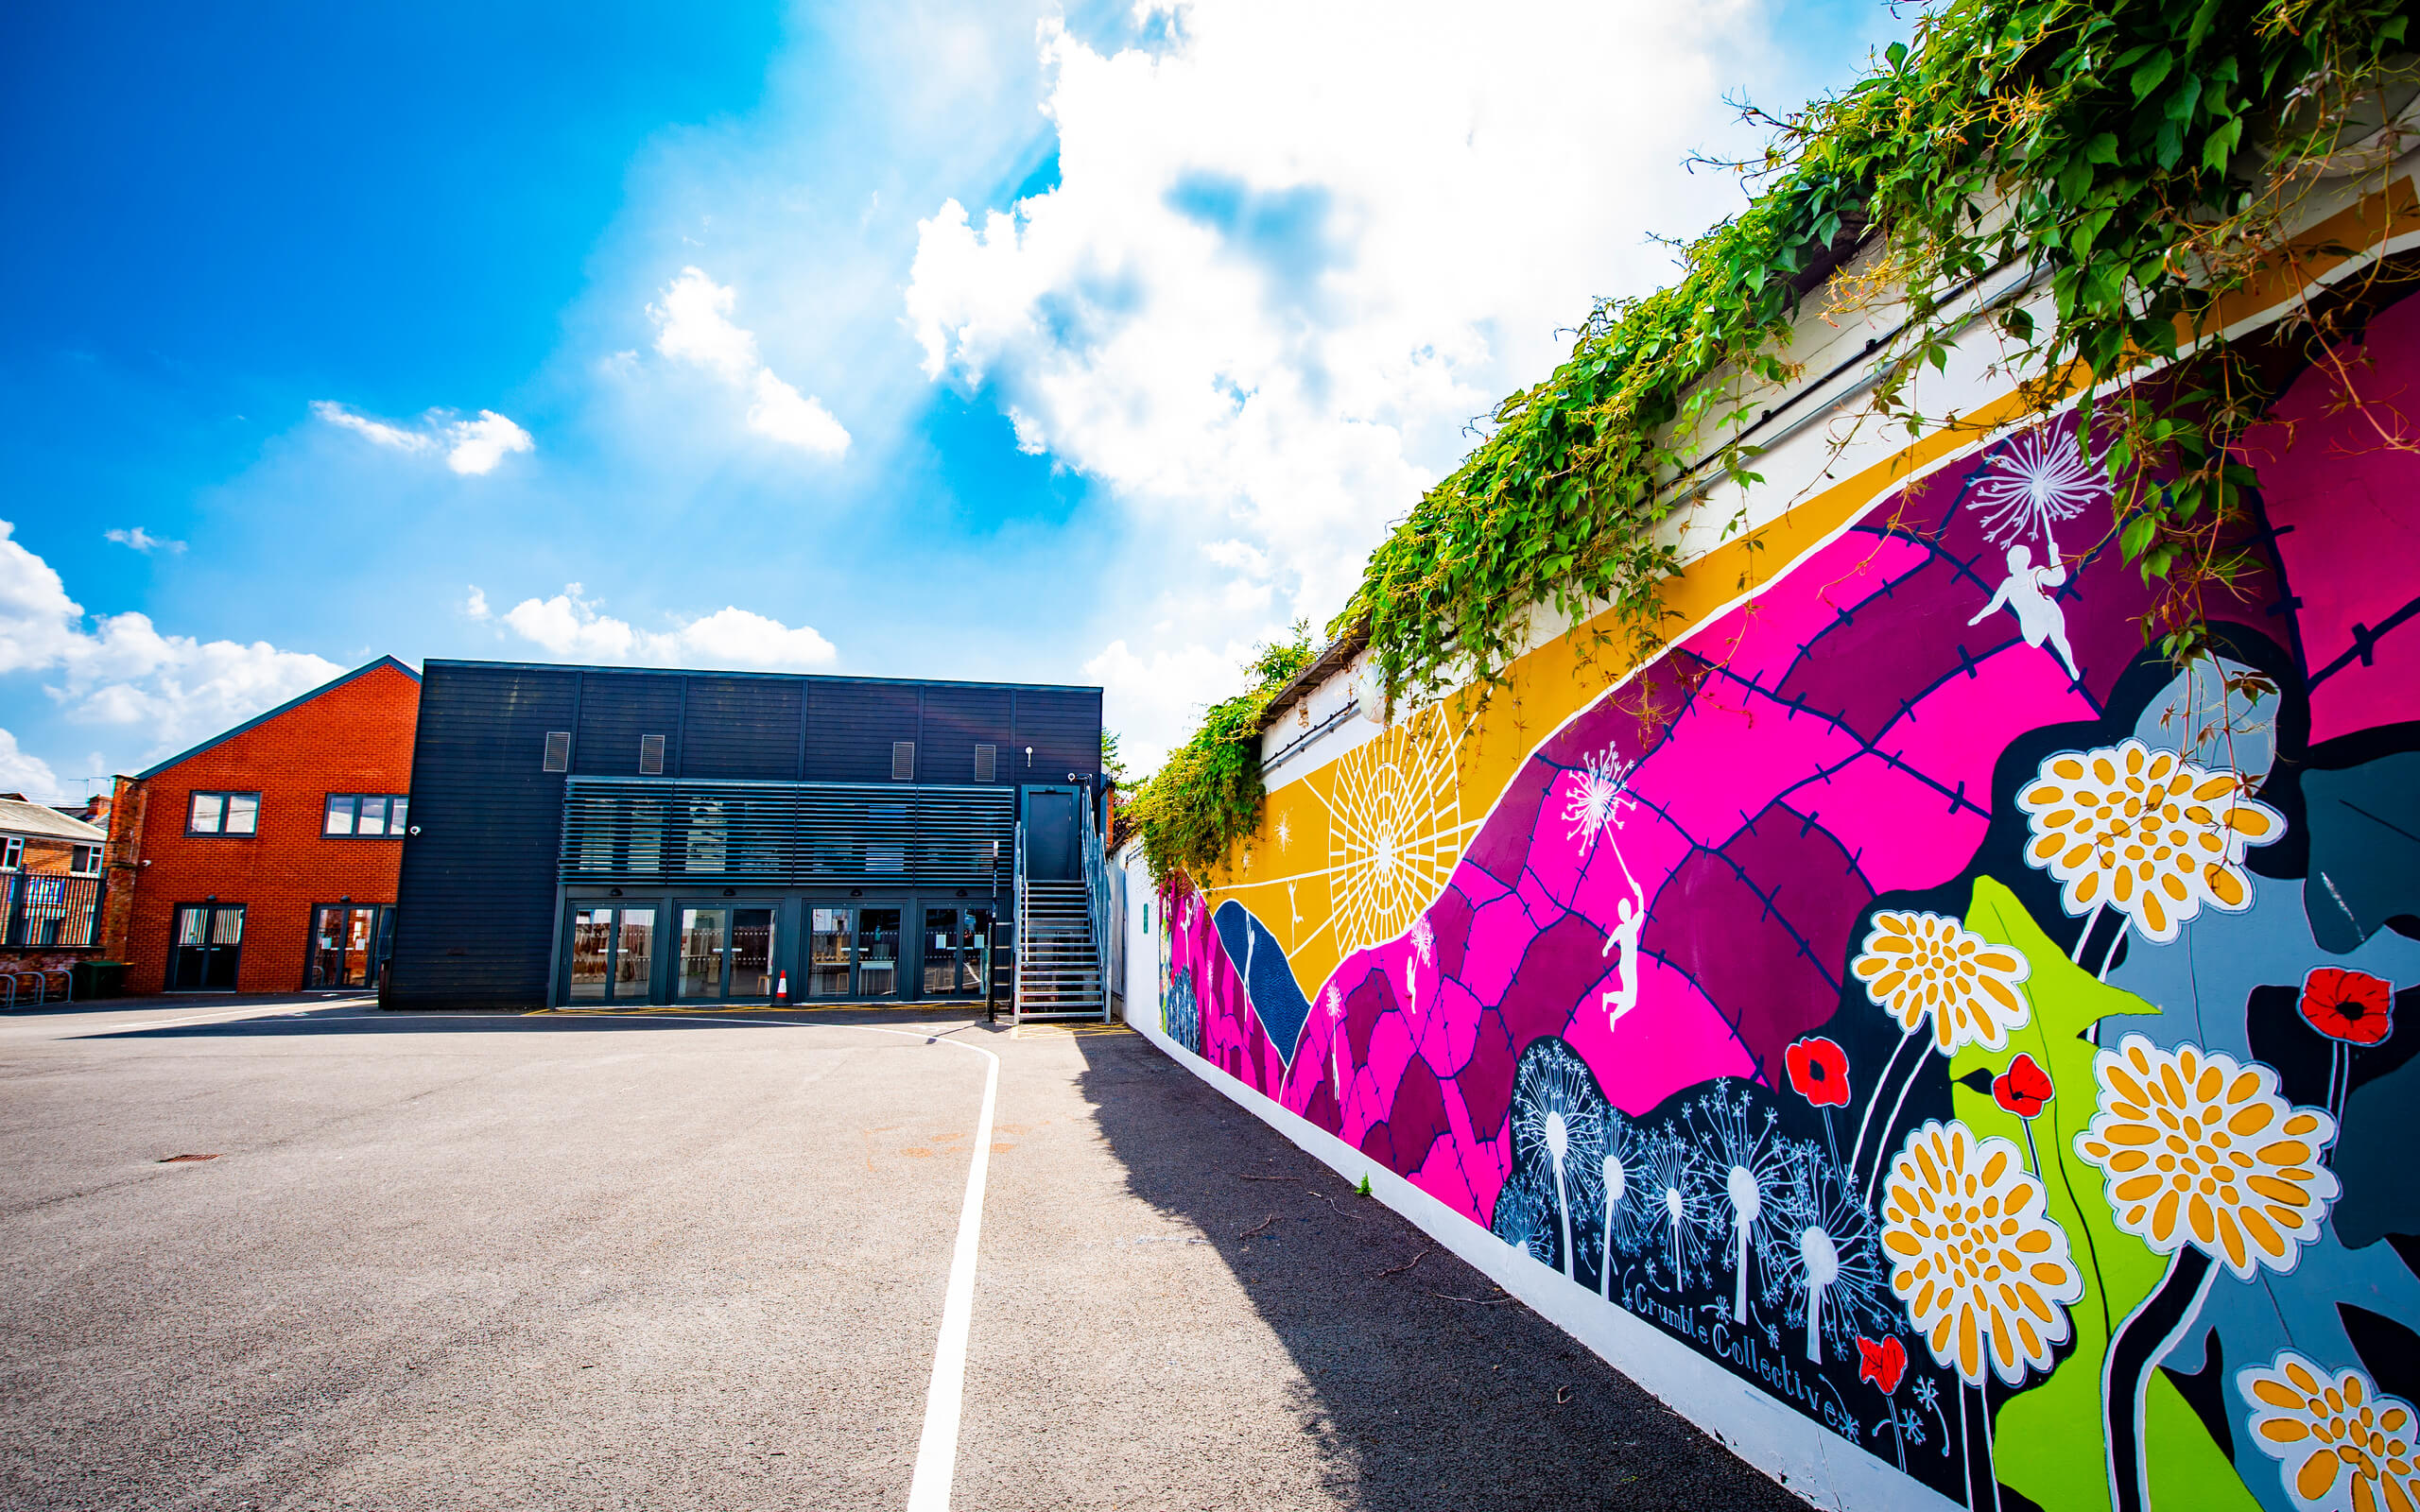 A mural design outside the University of Derby's Art and Design building.